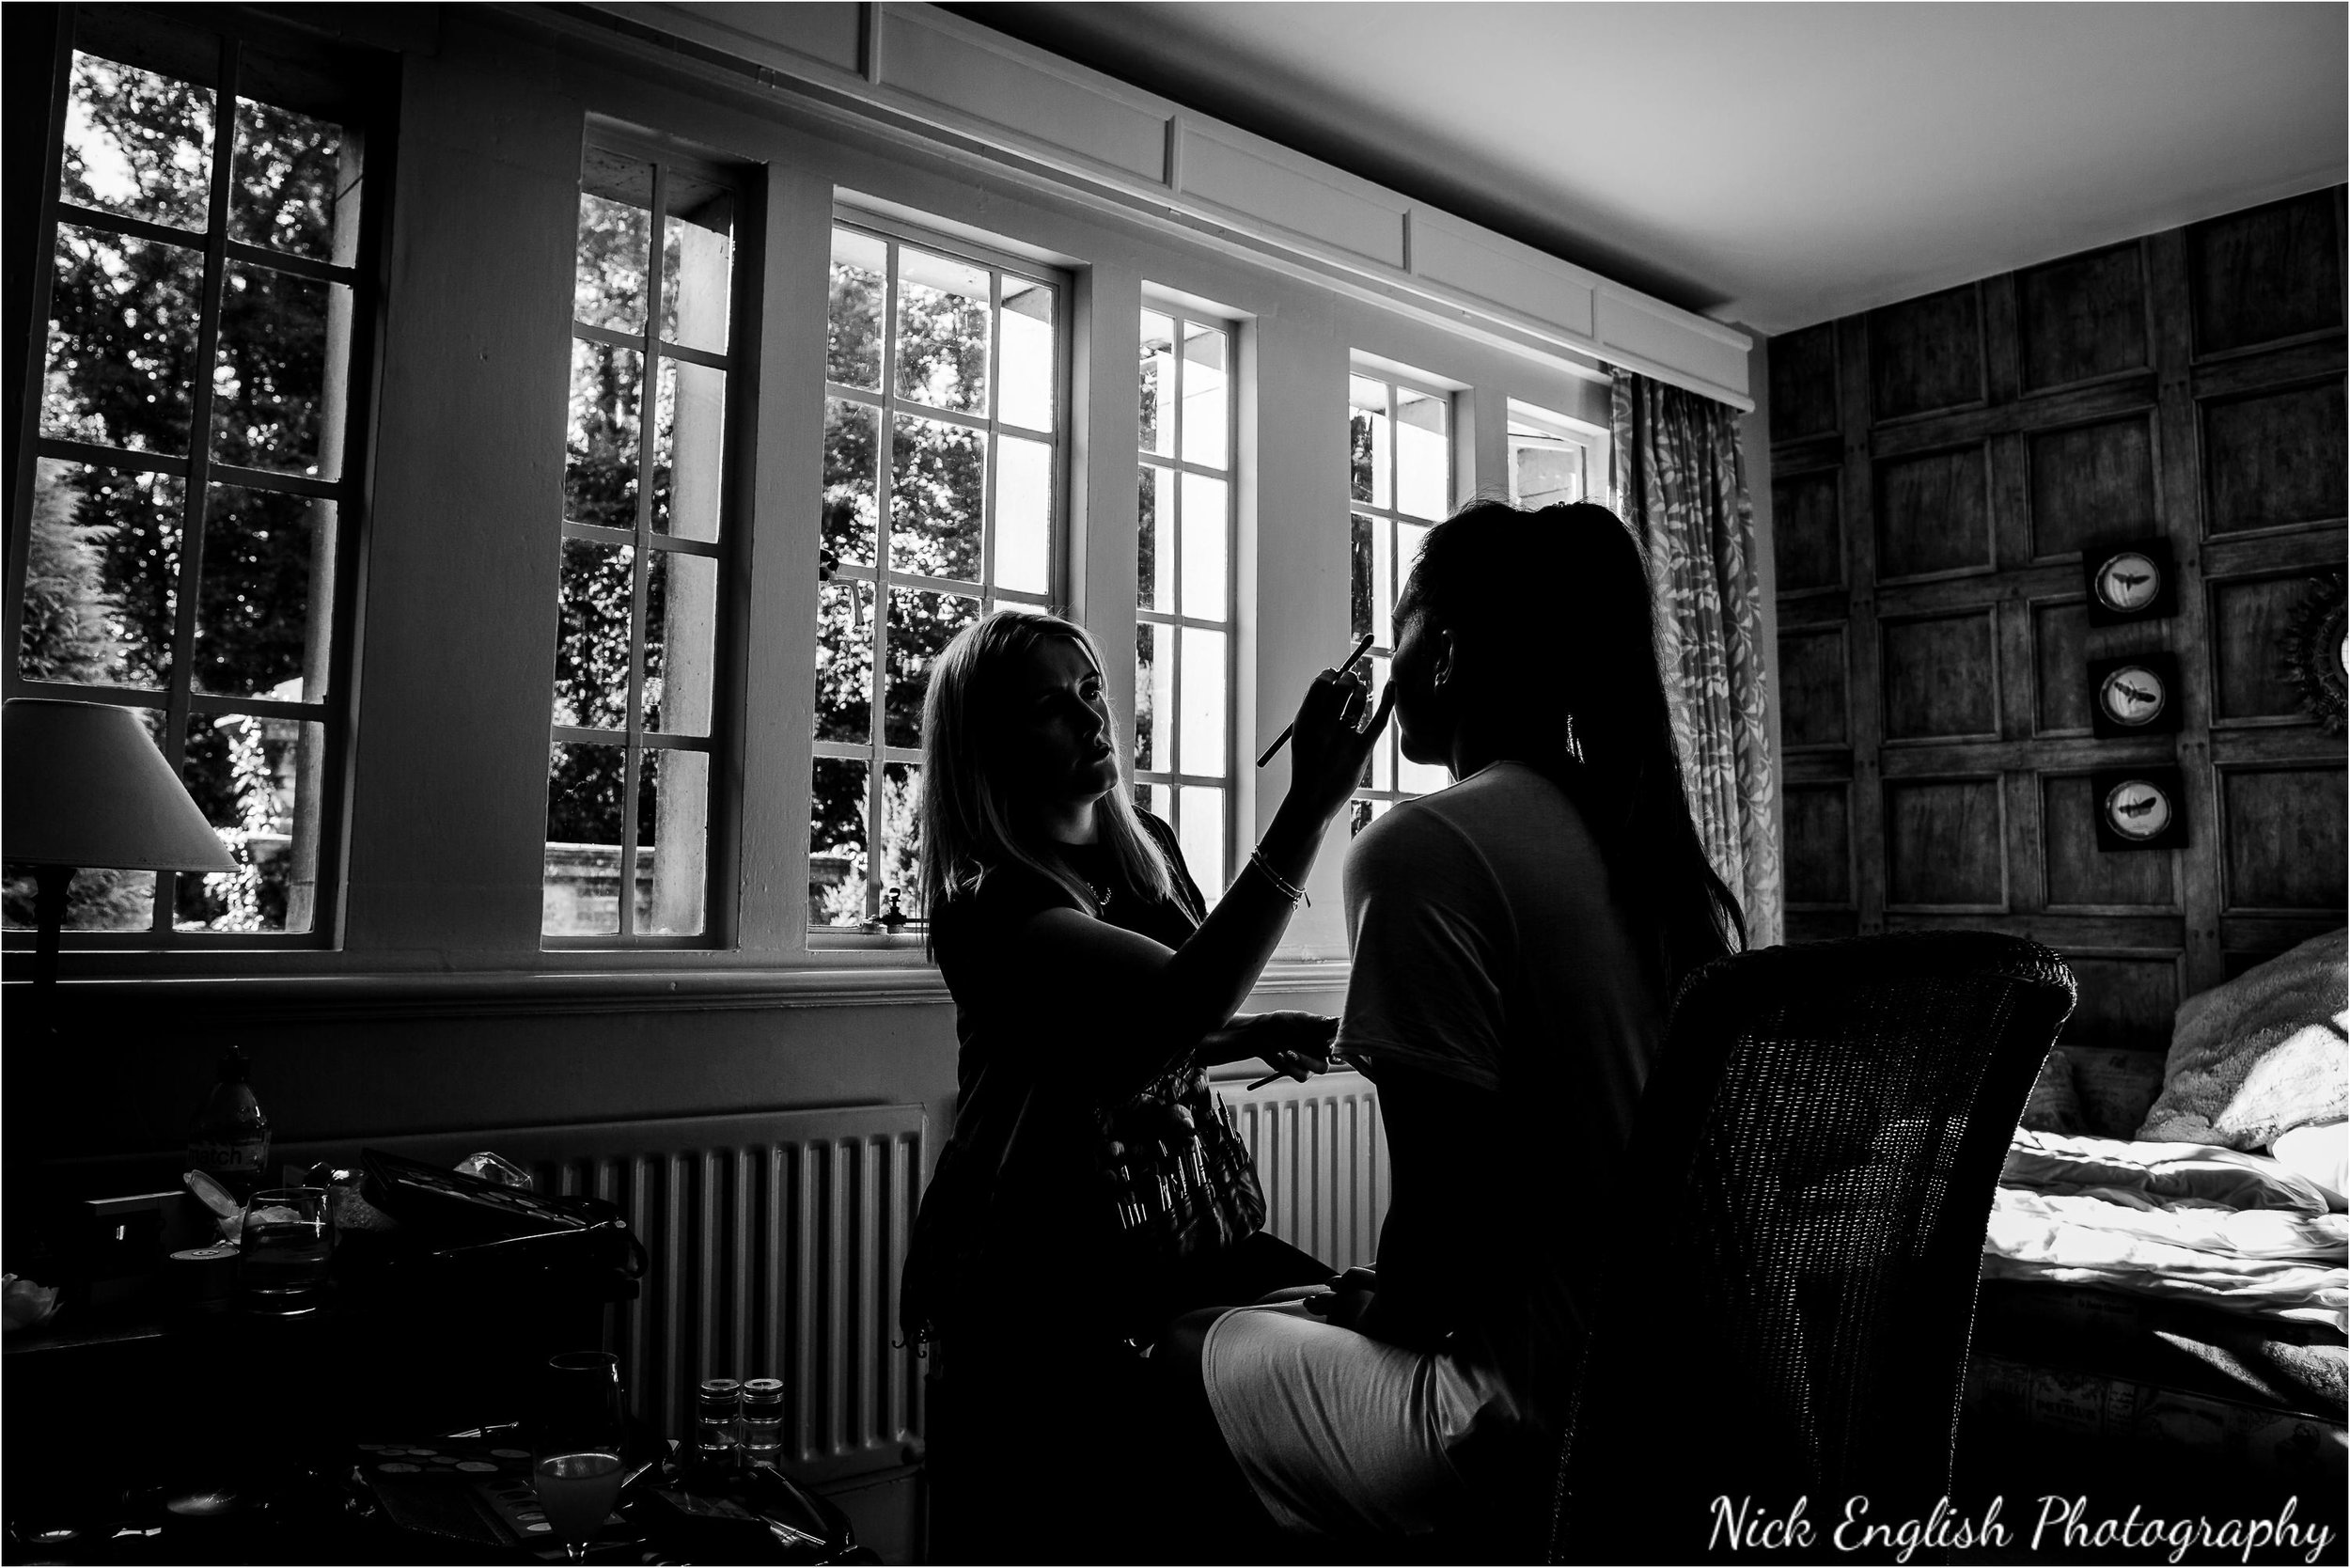 Eaves_Hall_Wedding_Photographs_Nick_English_Photography-6.jpg